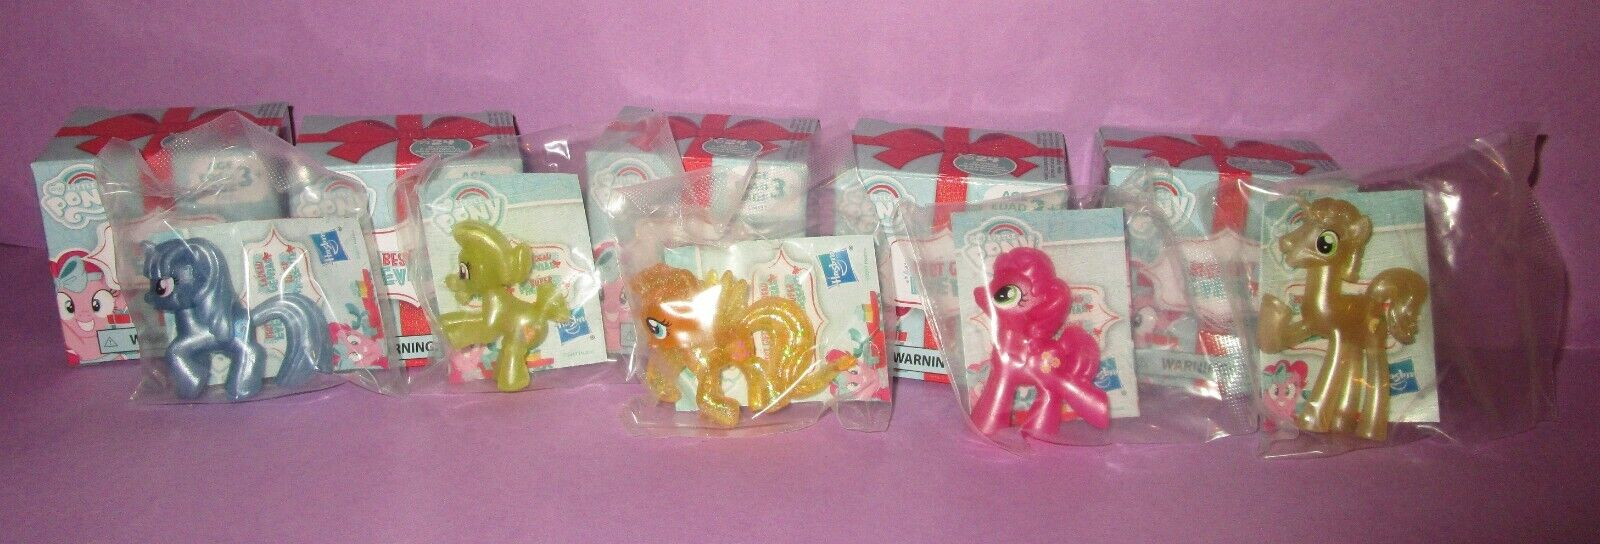 My Little Pony G4 Best Gift Ever Fluttershy Granny Trixie Flim Blind Bag Lot